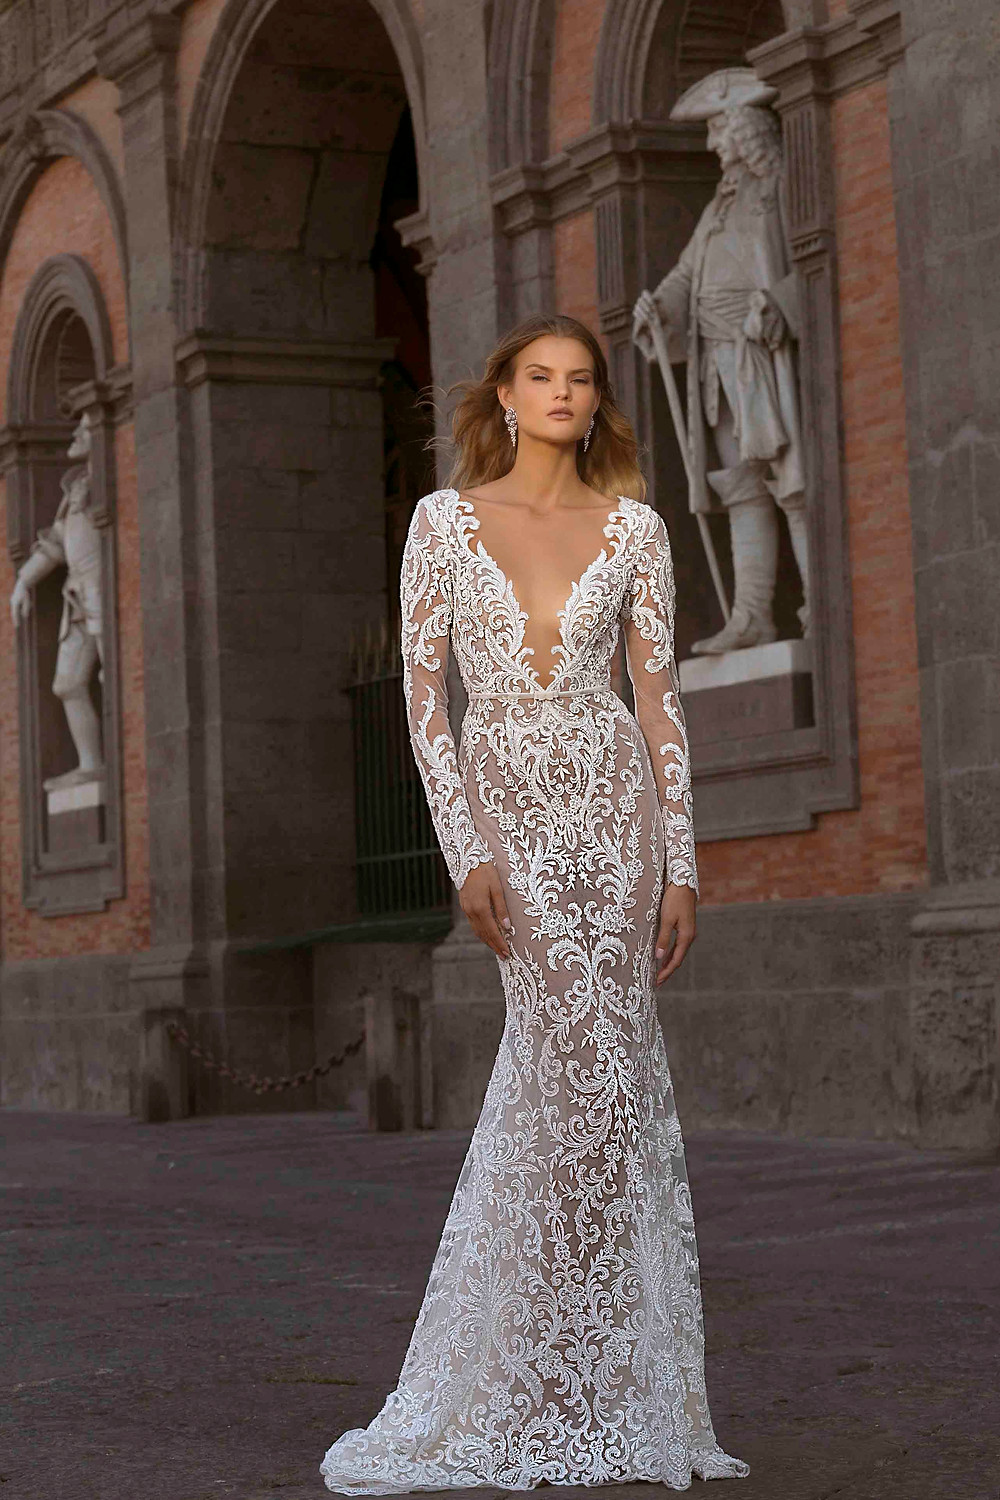 A Berta 2020 lace mermaid wedding dress, with long illusion sleeves and low v neckline